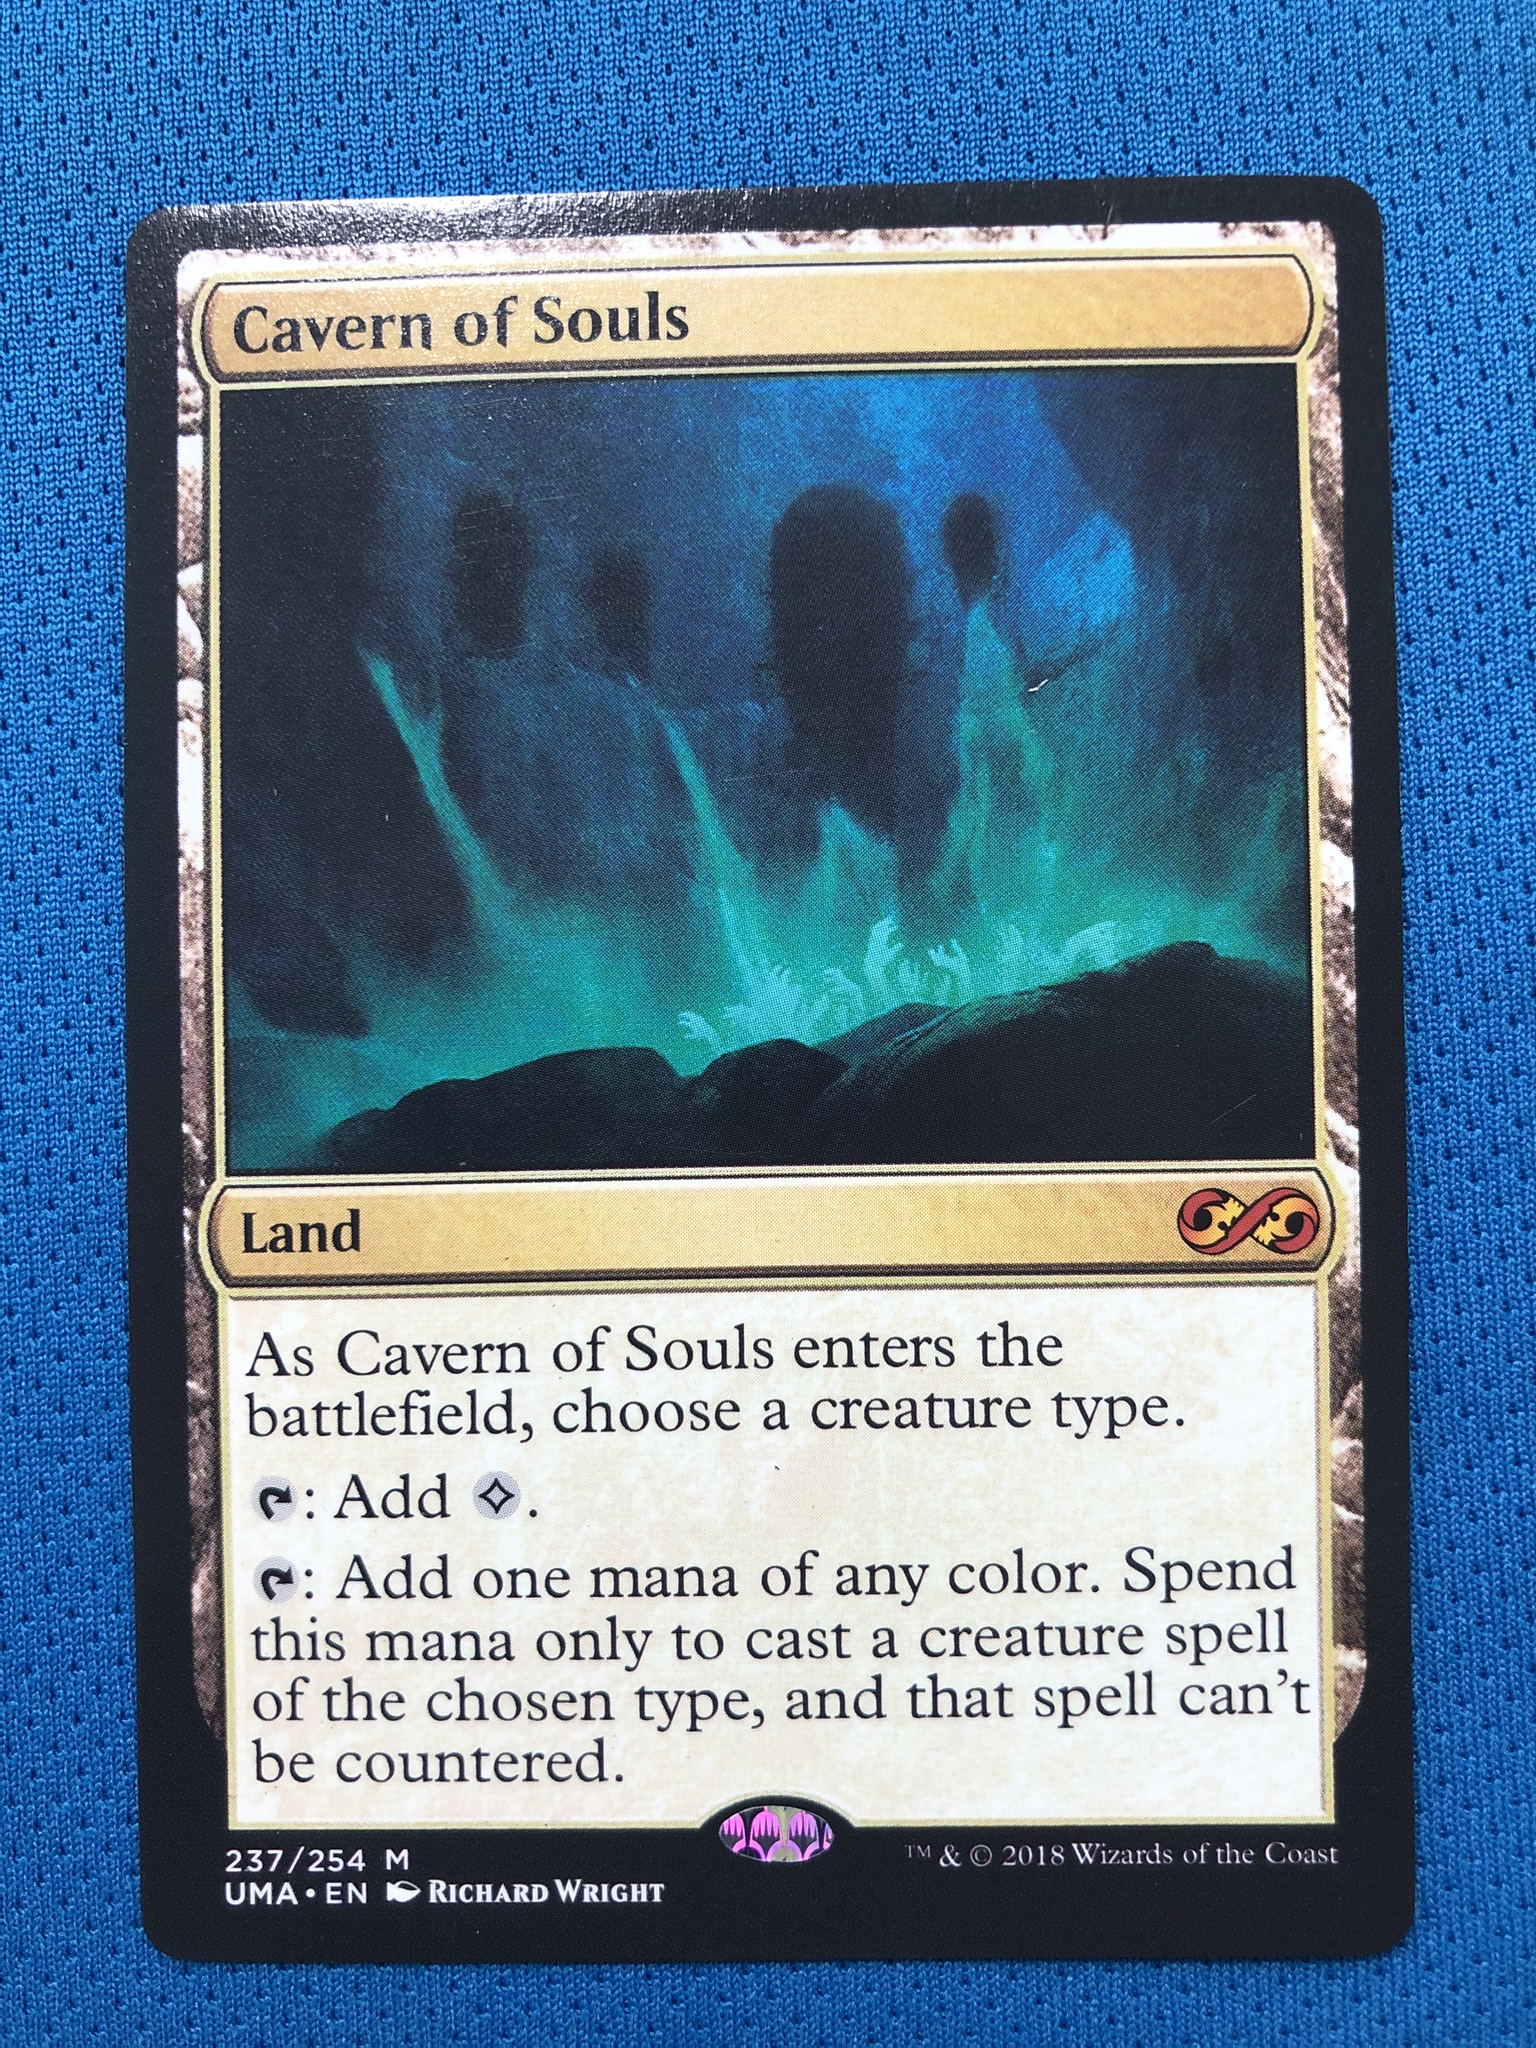 Cavern Of SoulUMA Hologram Magician ProxyKing 8.0 VIP The Proxy Cards To Gathering Every Single Mg Card.